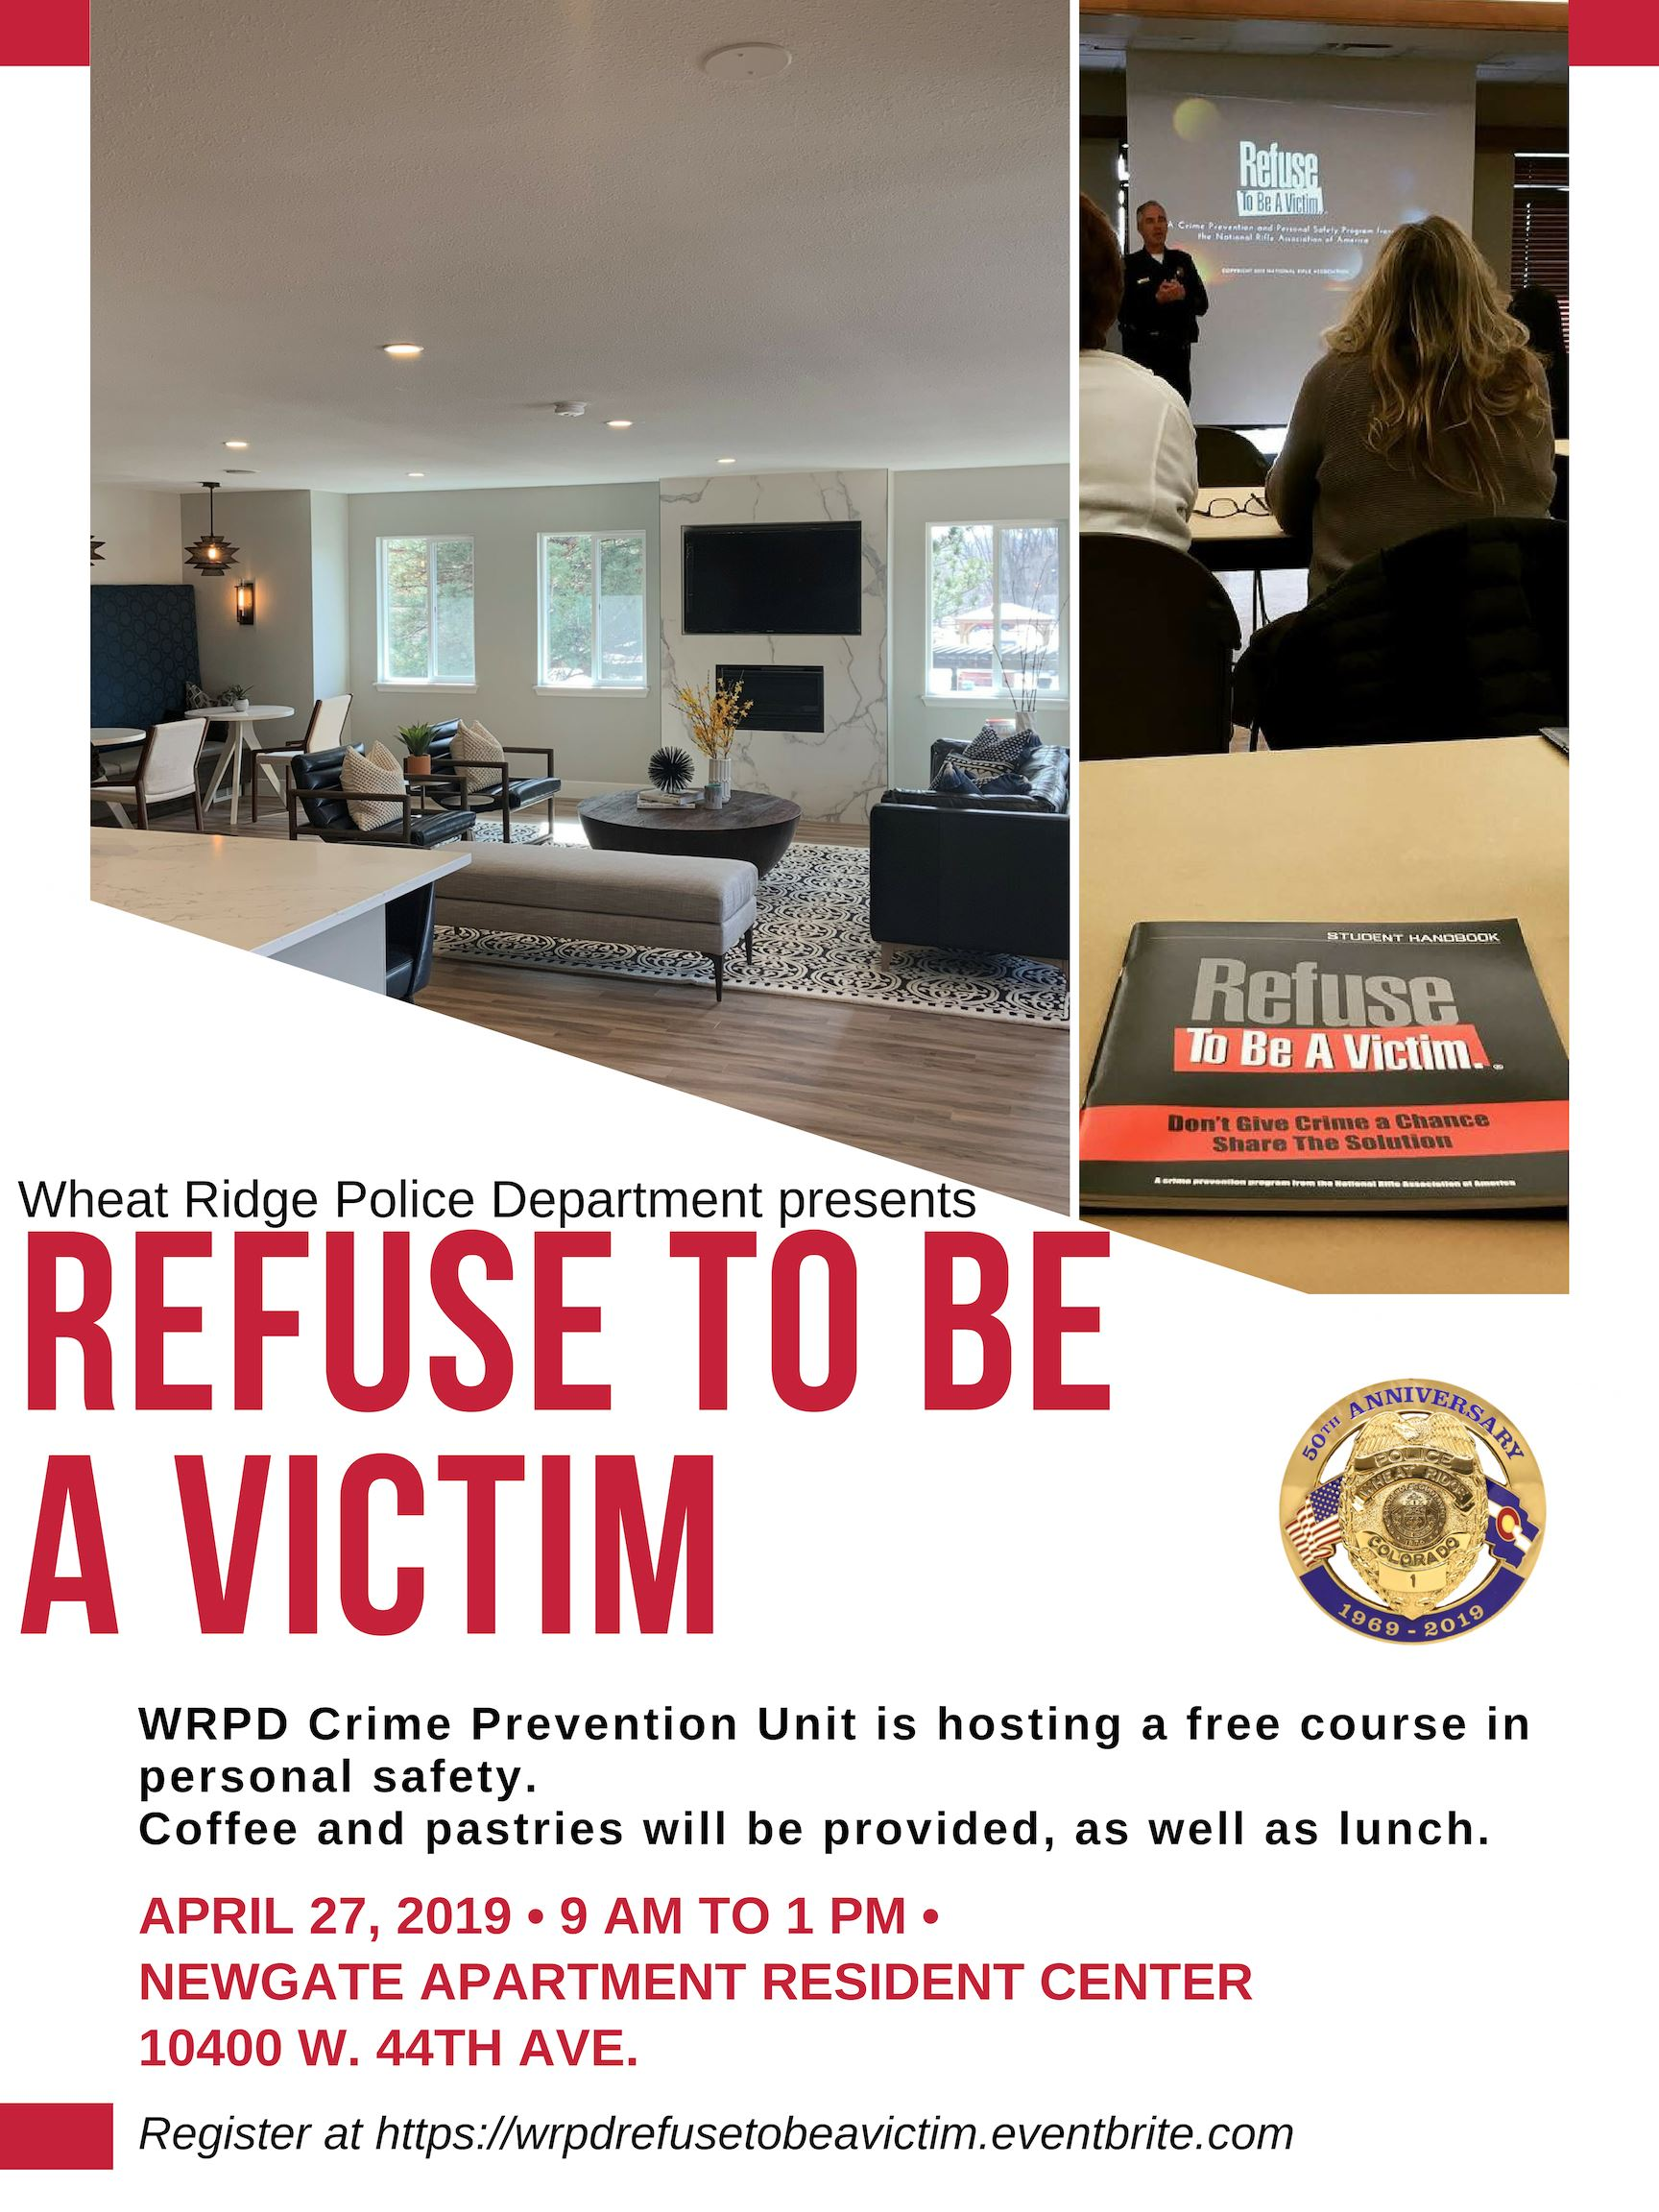 Refuse to be a victim apr 27-3